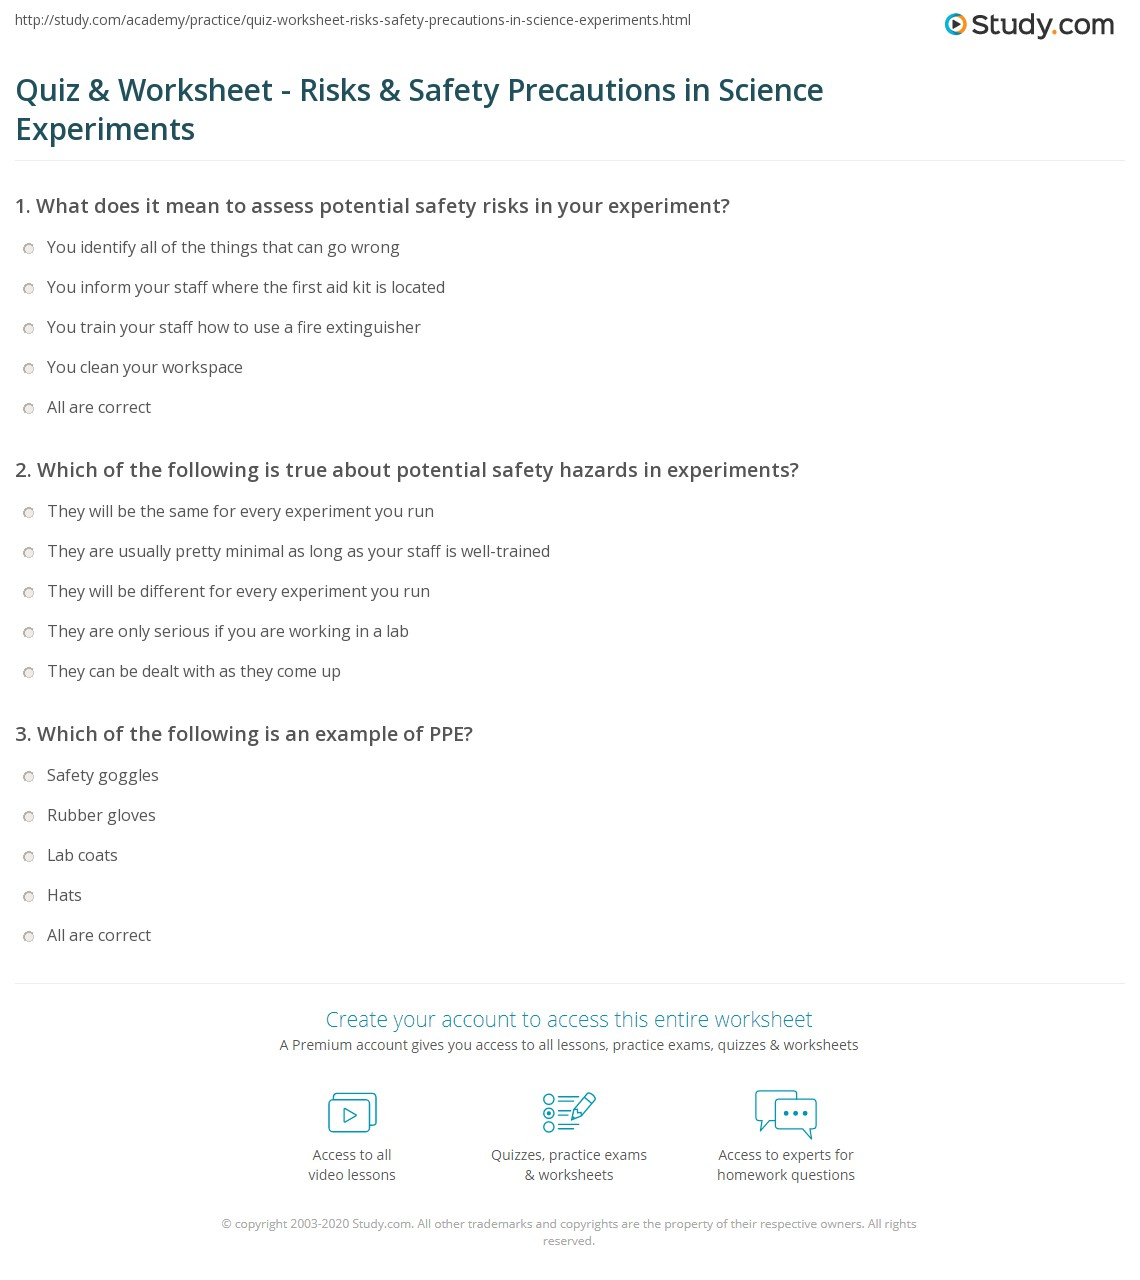 worksheet Science Experiment Worksheet quiz worksheet risks safety precautions in science experiments print understanding taking worksheet